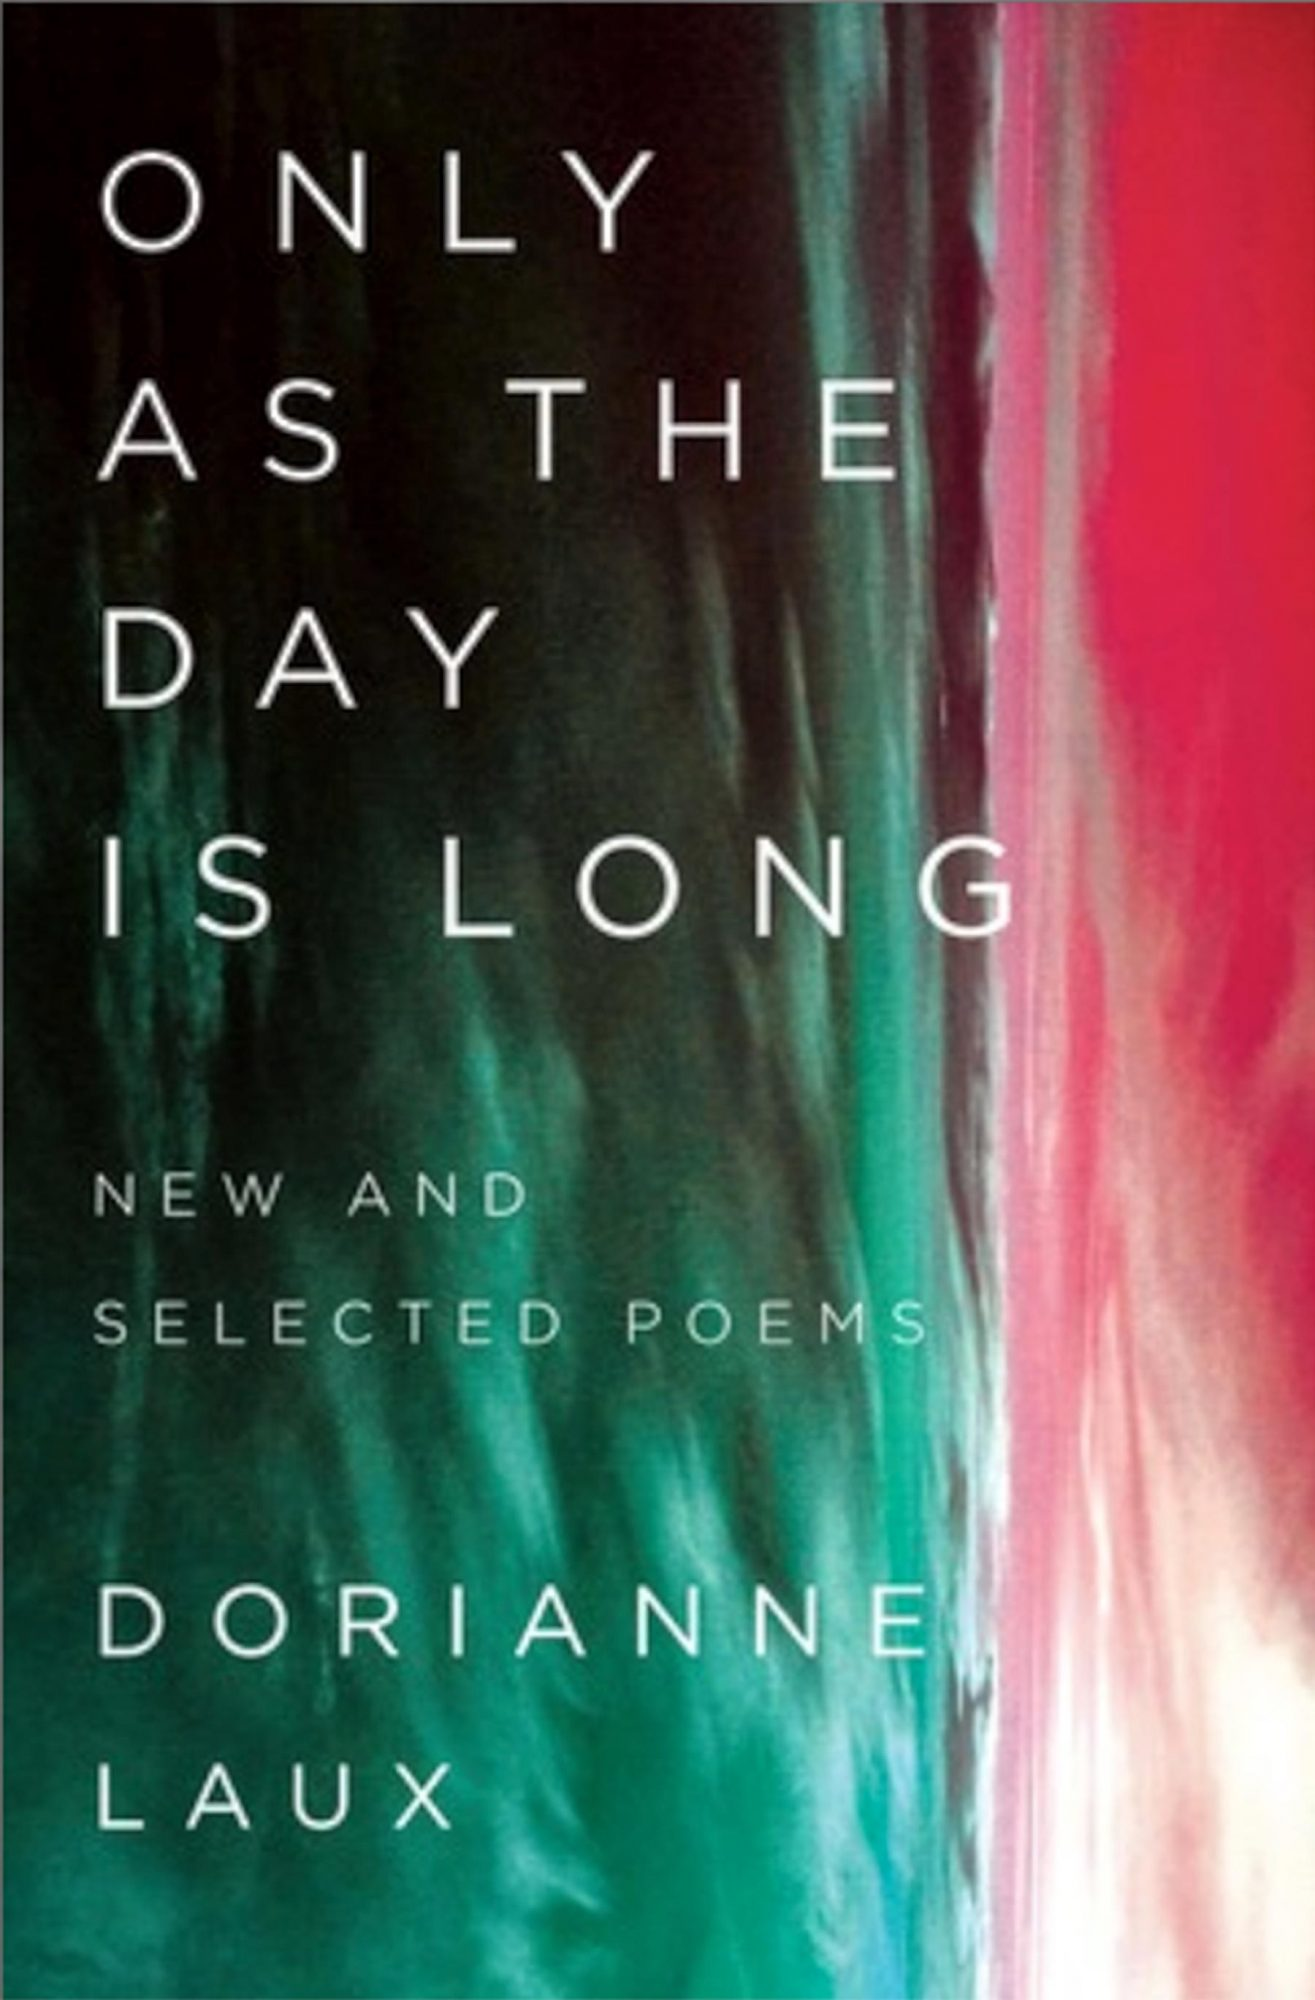 Only As the Day Is Long by Dorianne Laux